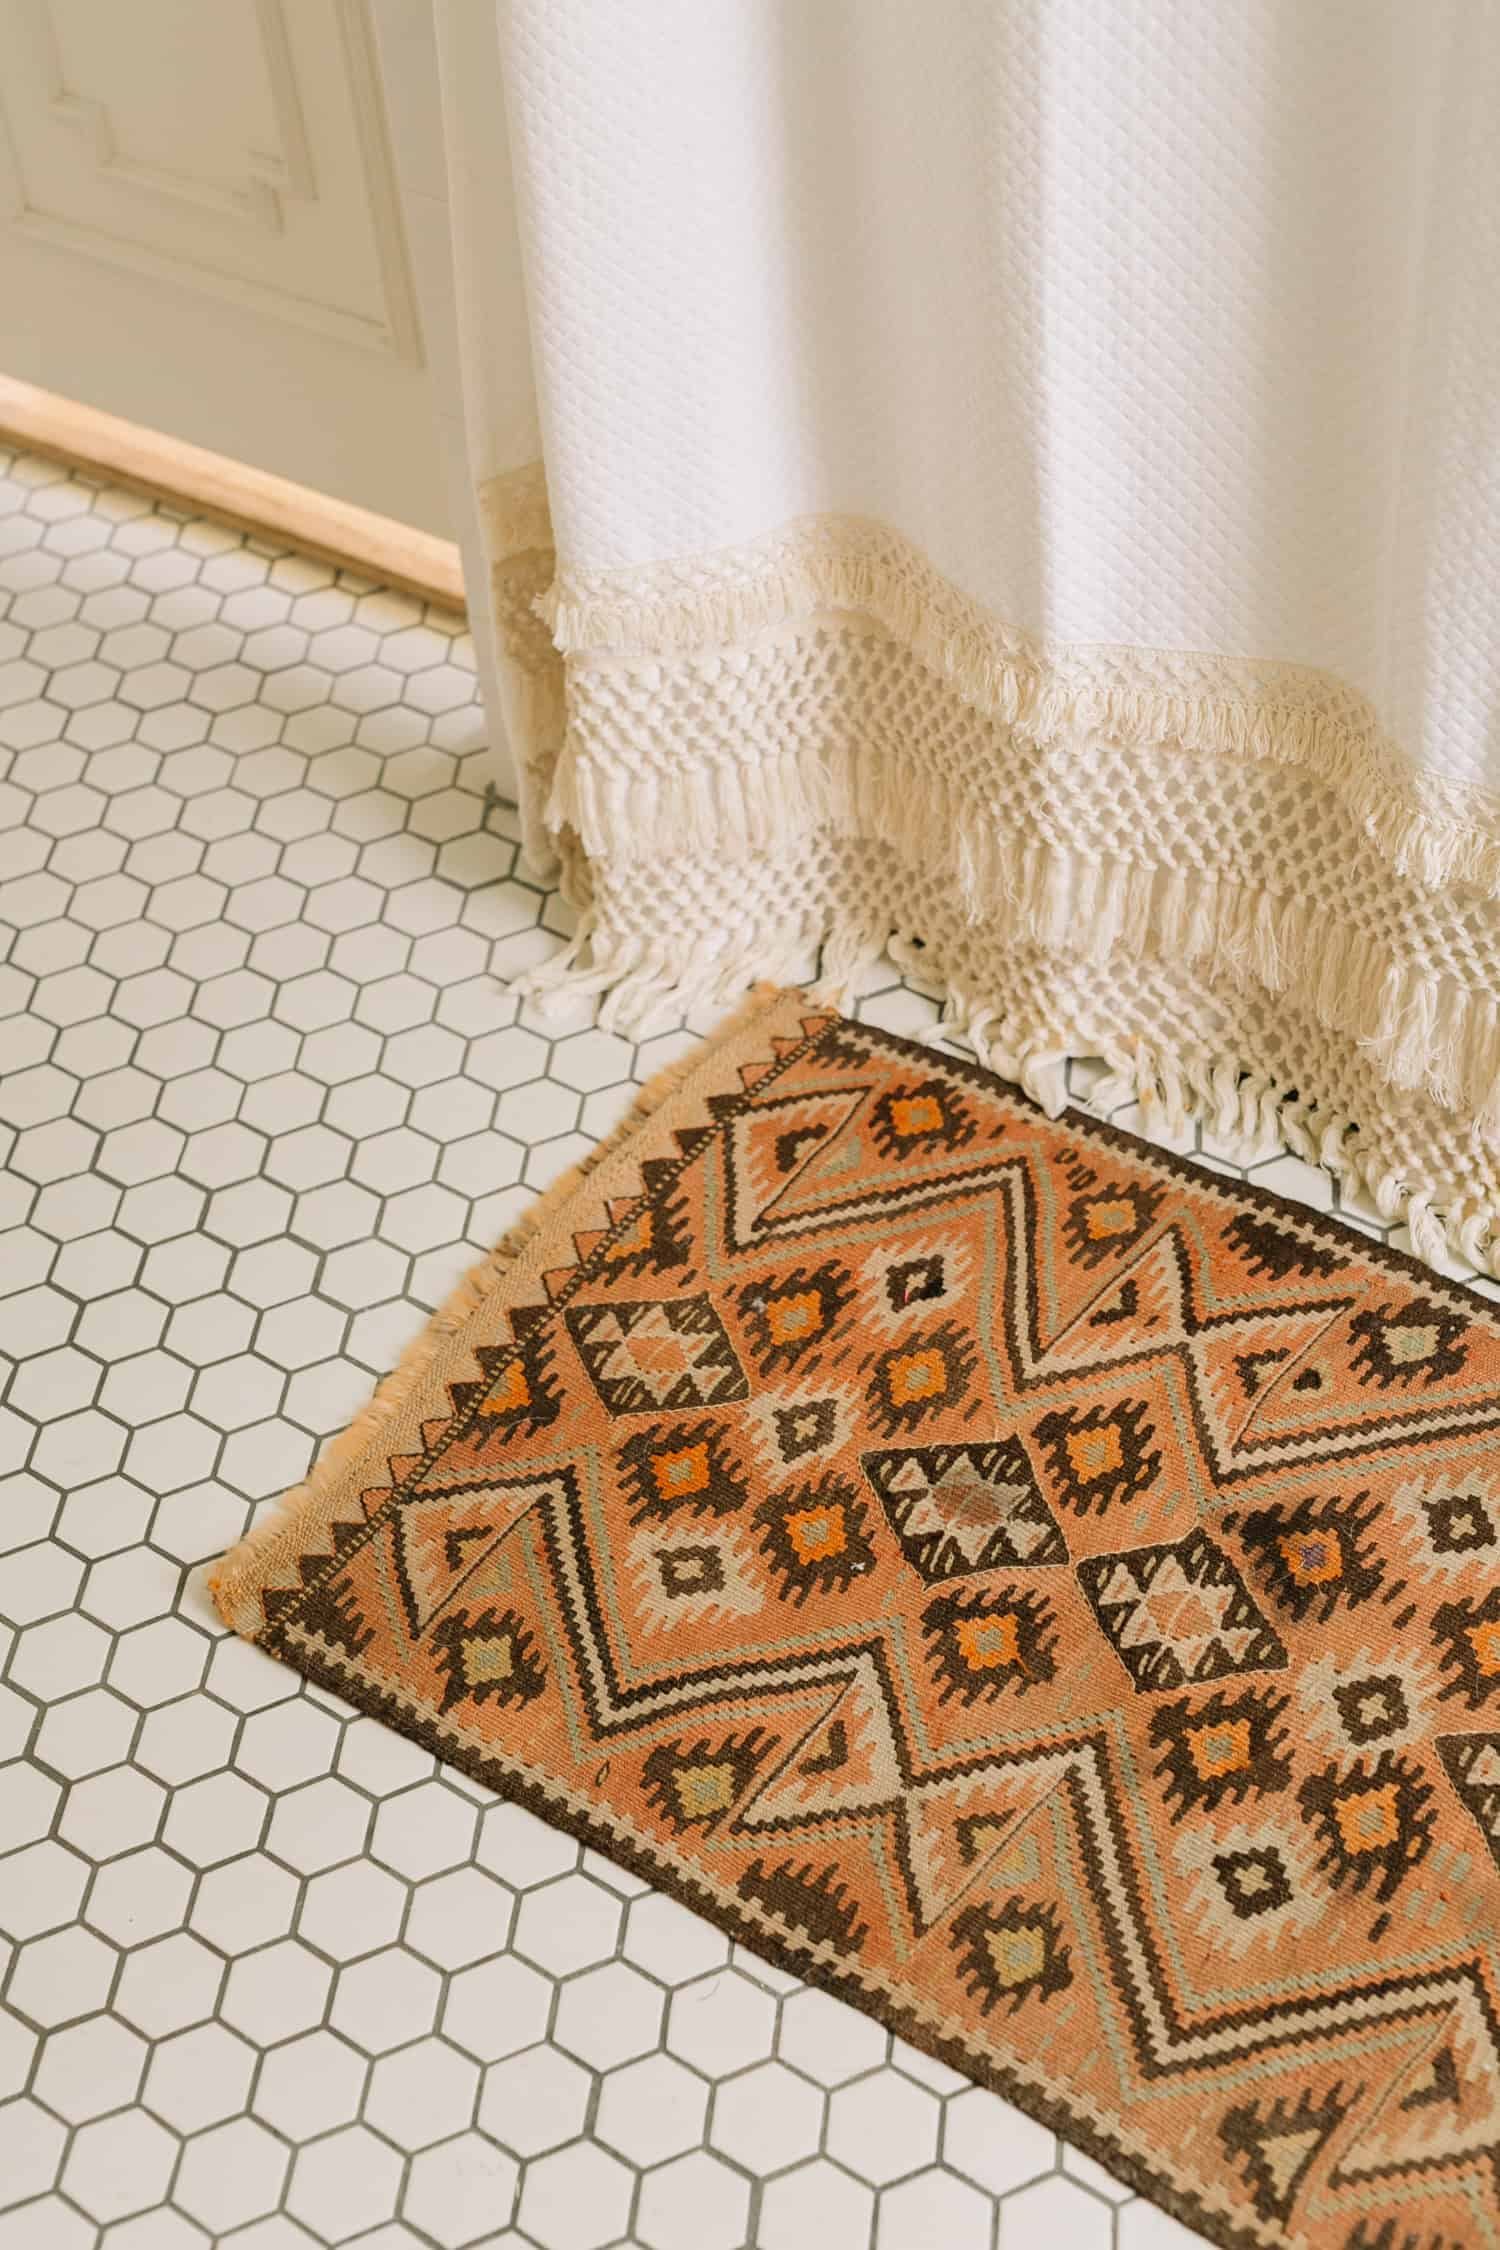 Tan southwestern looking vintage rug in a bathroom with white hexagon floor tile and macrame shower curtain